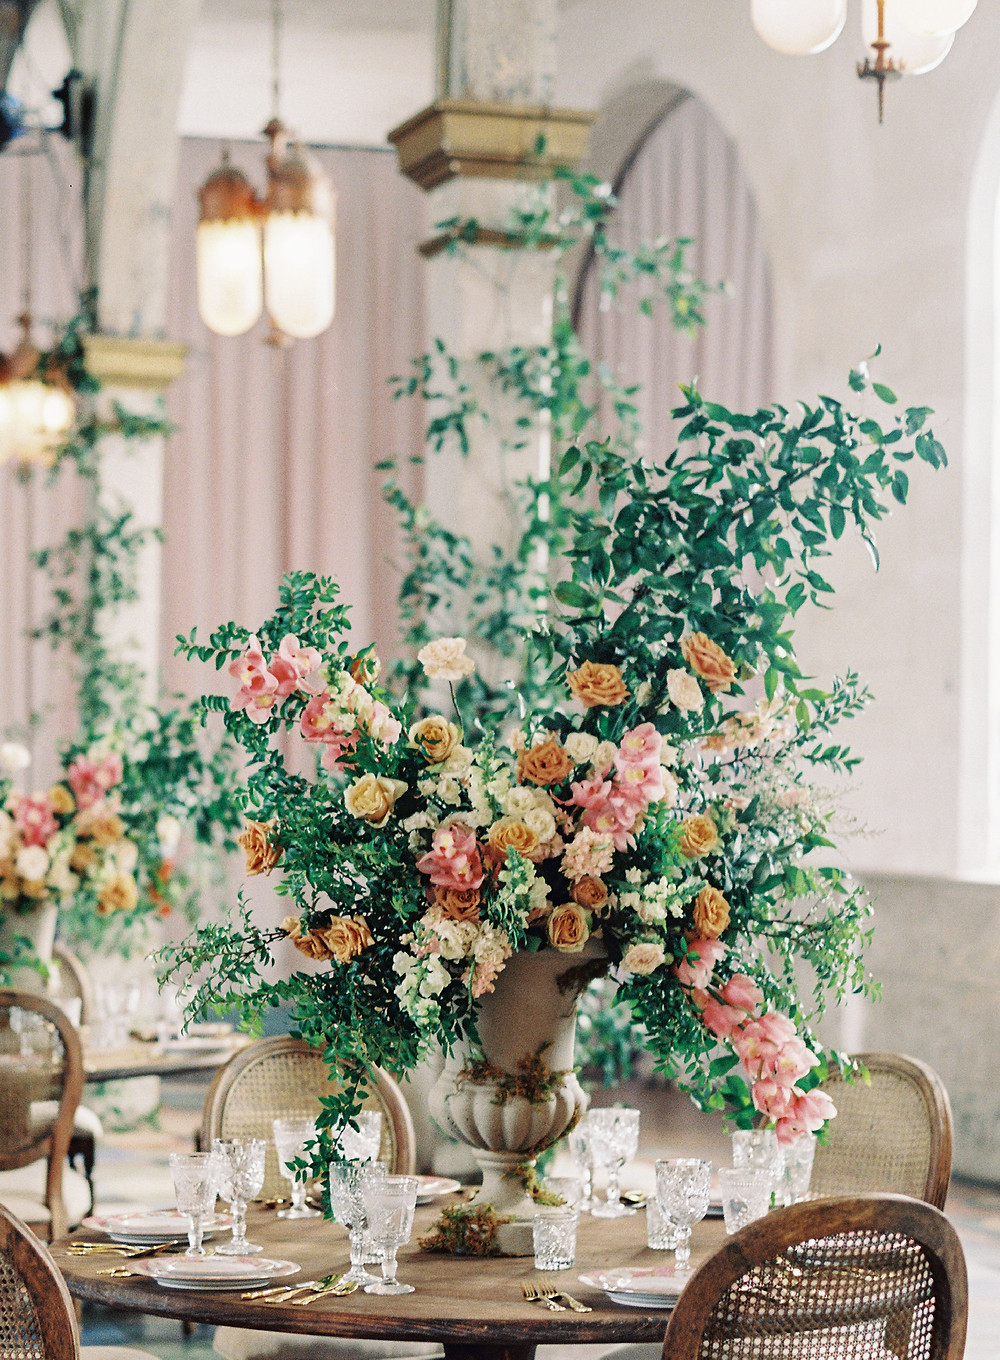 Leaf + Petal, Marigny Opera House, New Orleans, seated dinner, garden urns, smilax columns, greenery wedding, Lovegood rentals, Bridgerton wedding